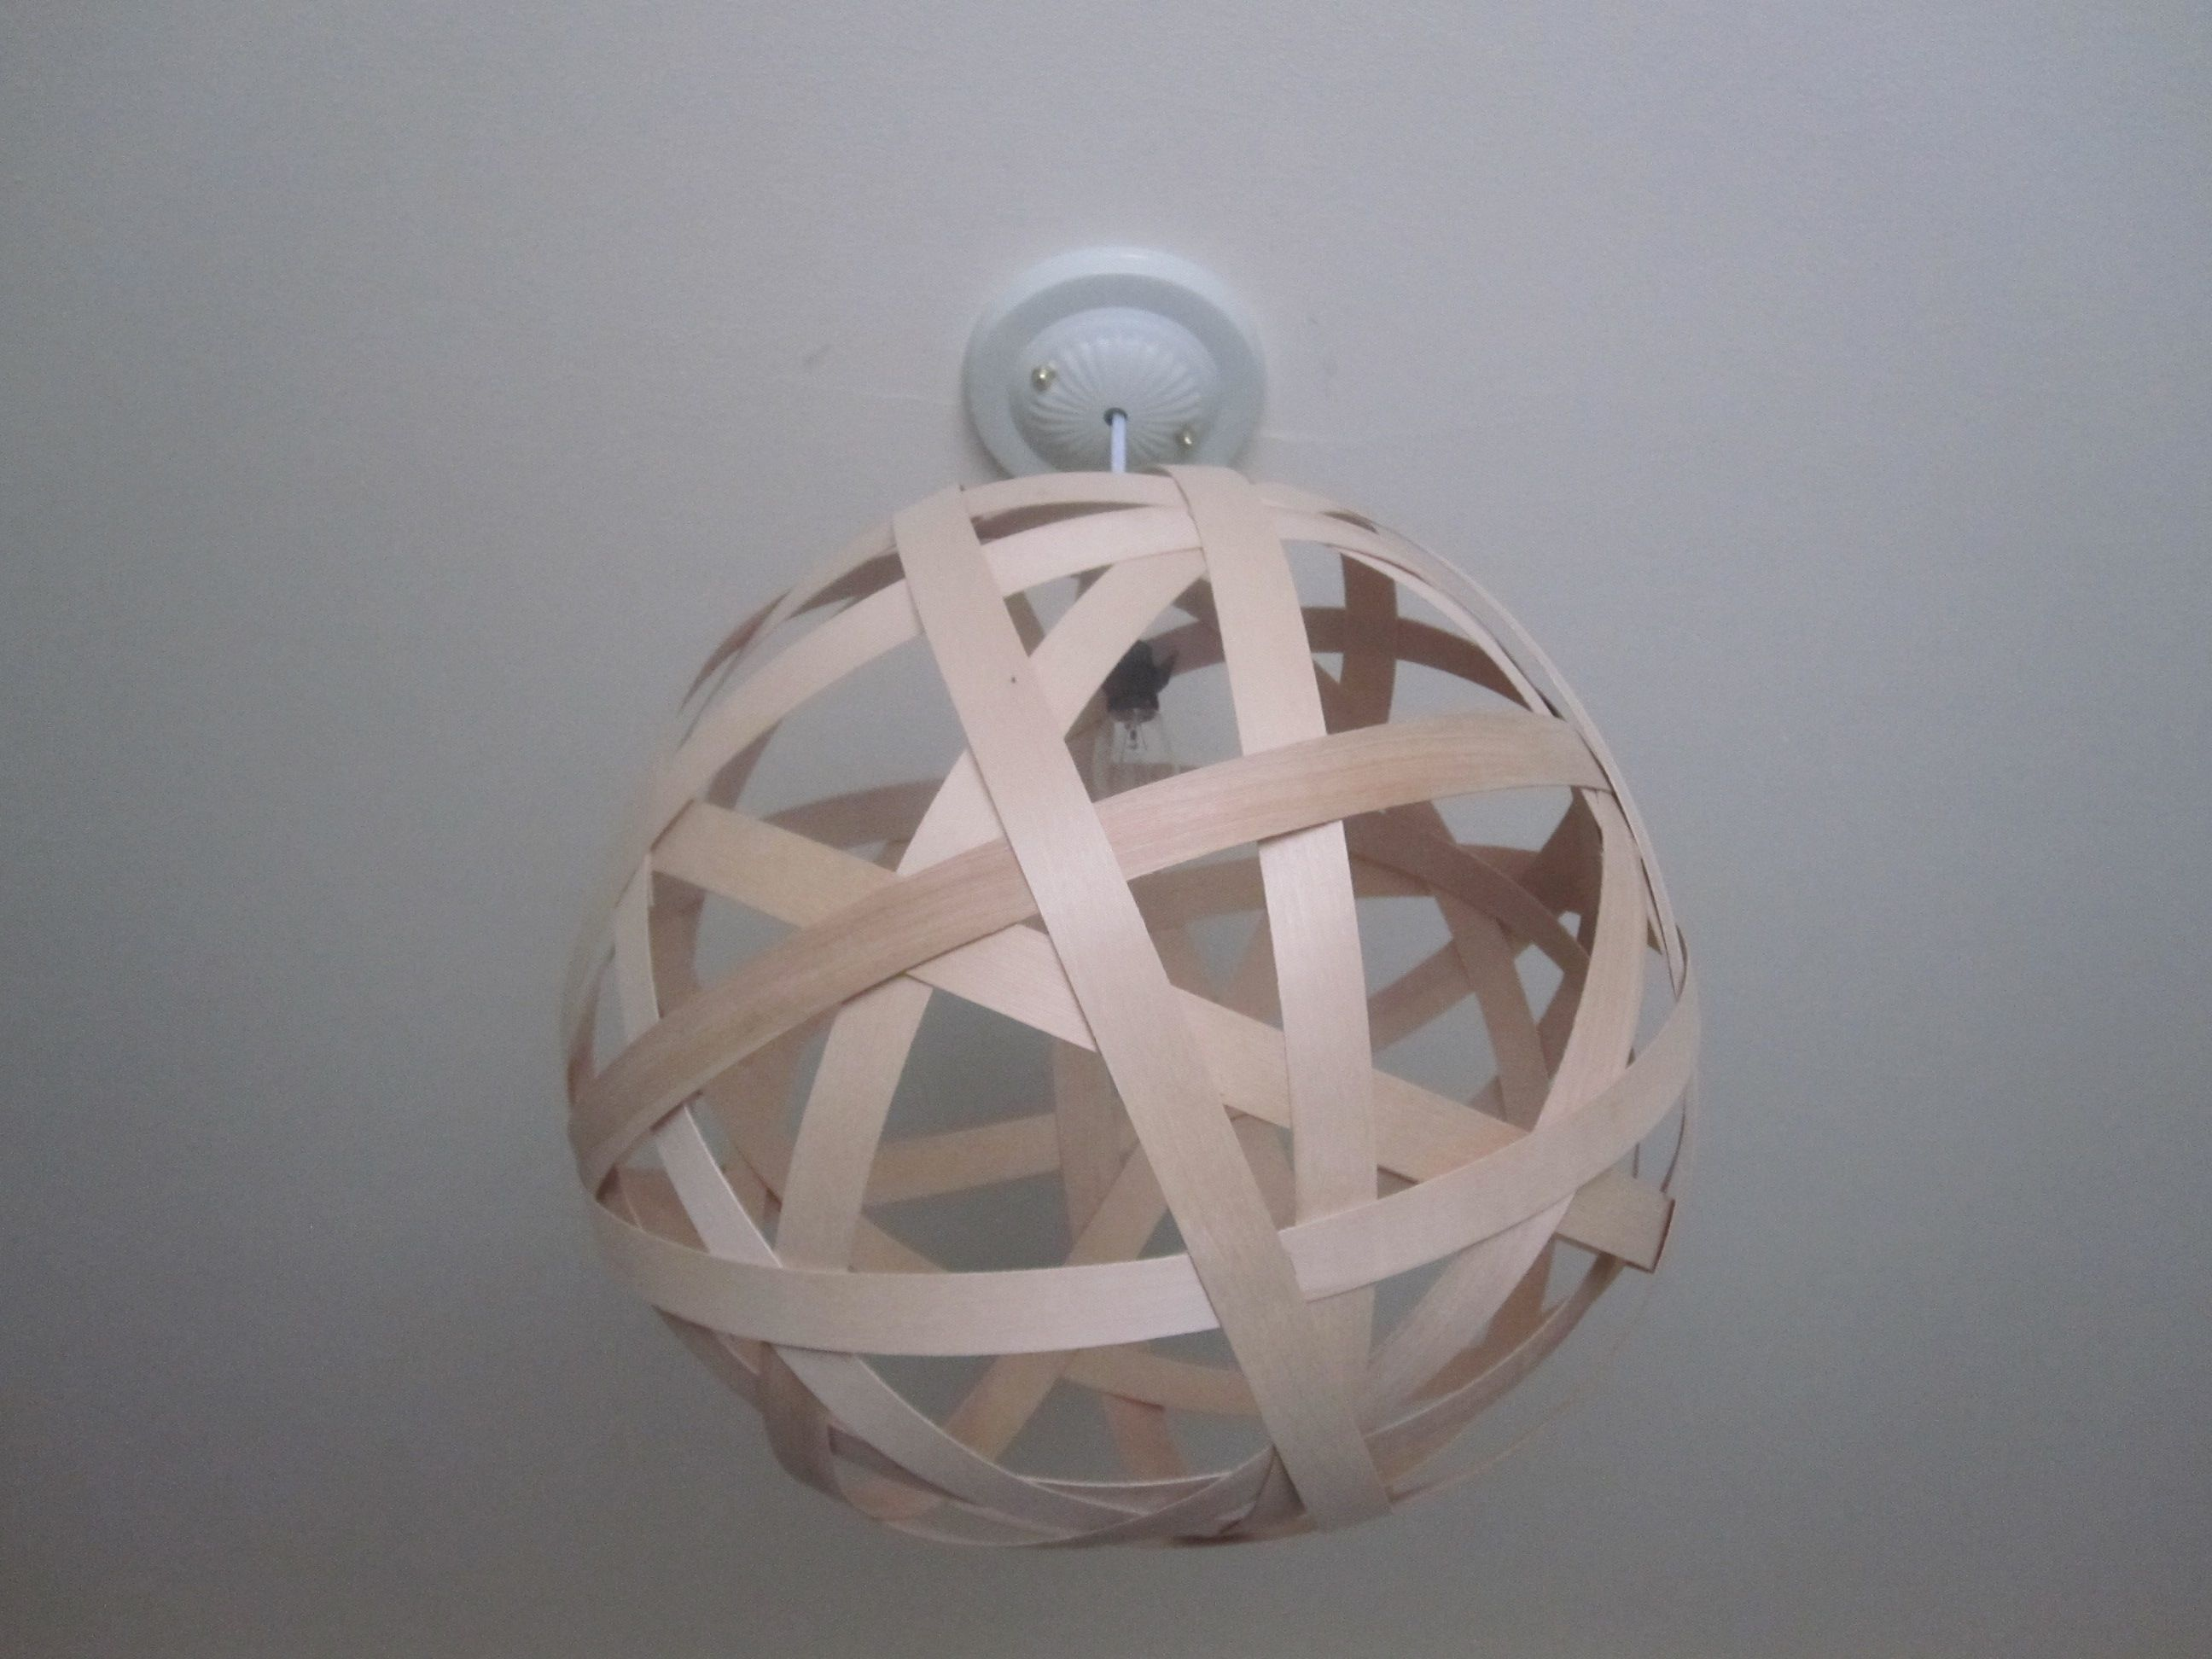 The moooi random pendant knock off globe lights wood veneer and diy wood veneer globe light tutorial could be very modern as is mozeypictures Images